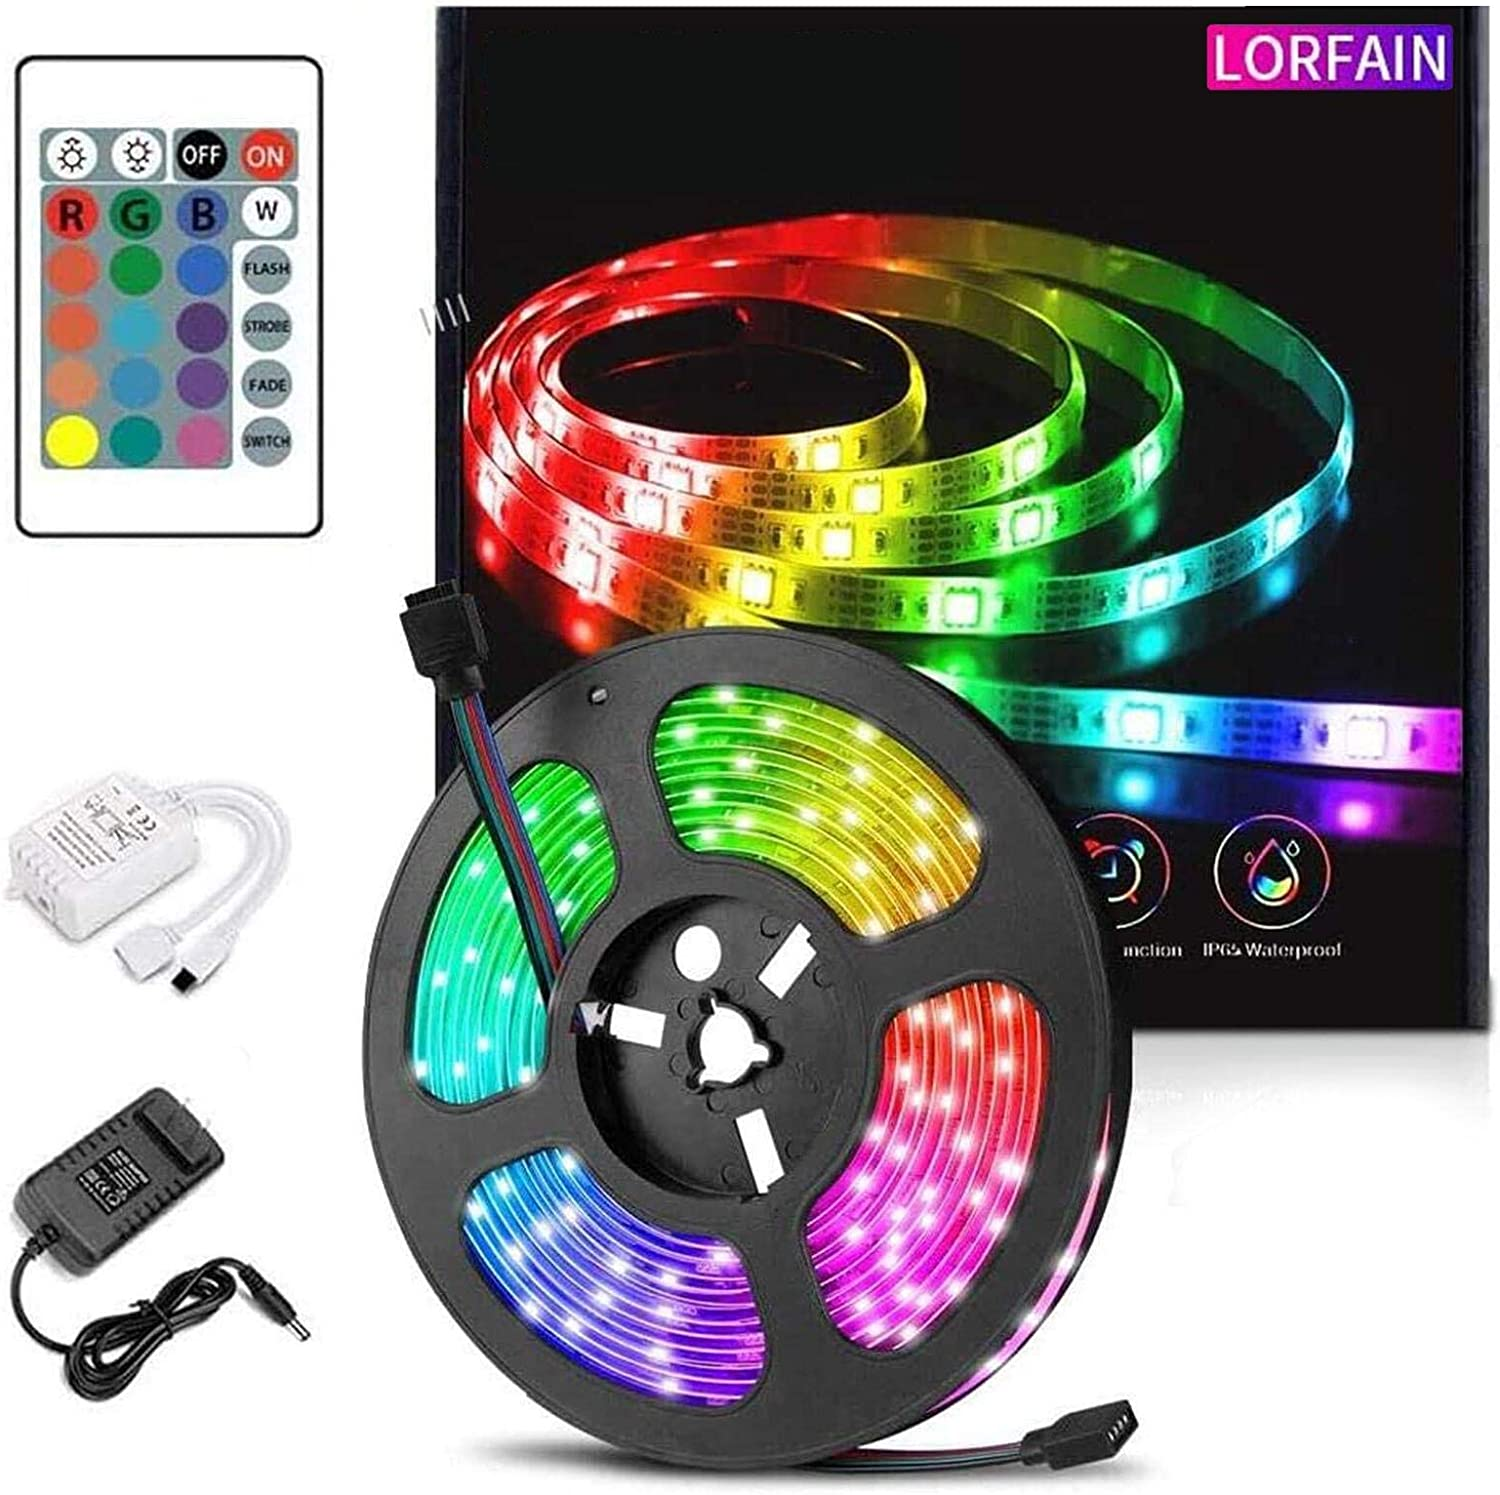 MAX.64Ft 5050 SMD RGB LED Strip Light Kits Remote Power Room Party Fairy Lights